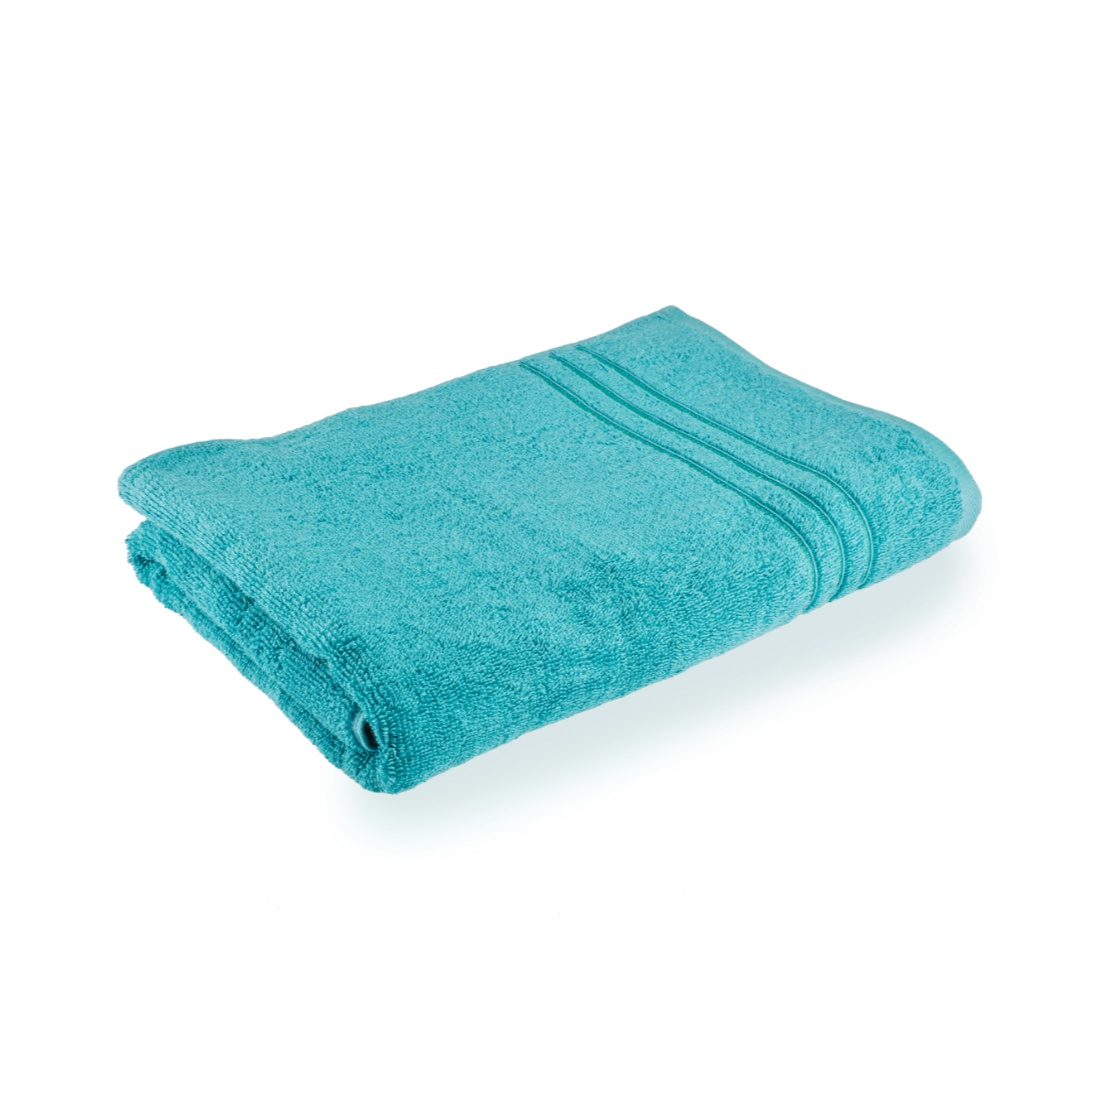 Bath Towel 70X140 Nora Turq Combed Cotton Bath Towels in Turquoise Colour by Living Essence